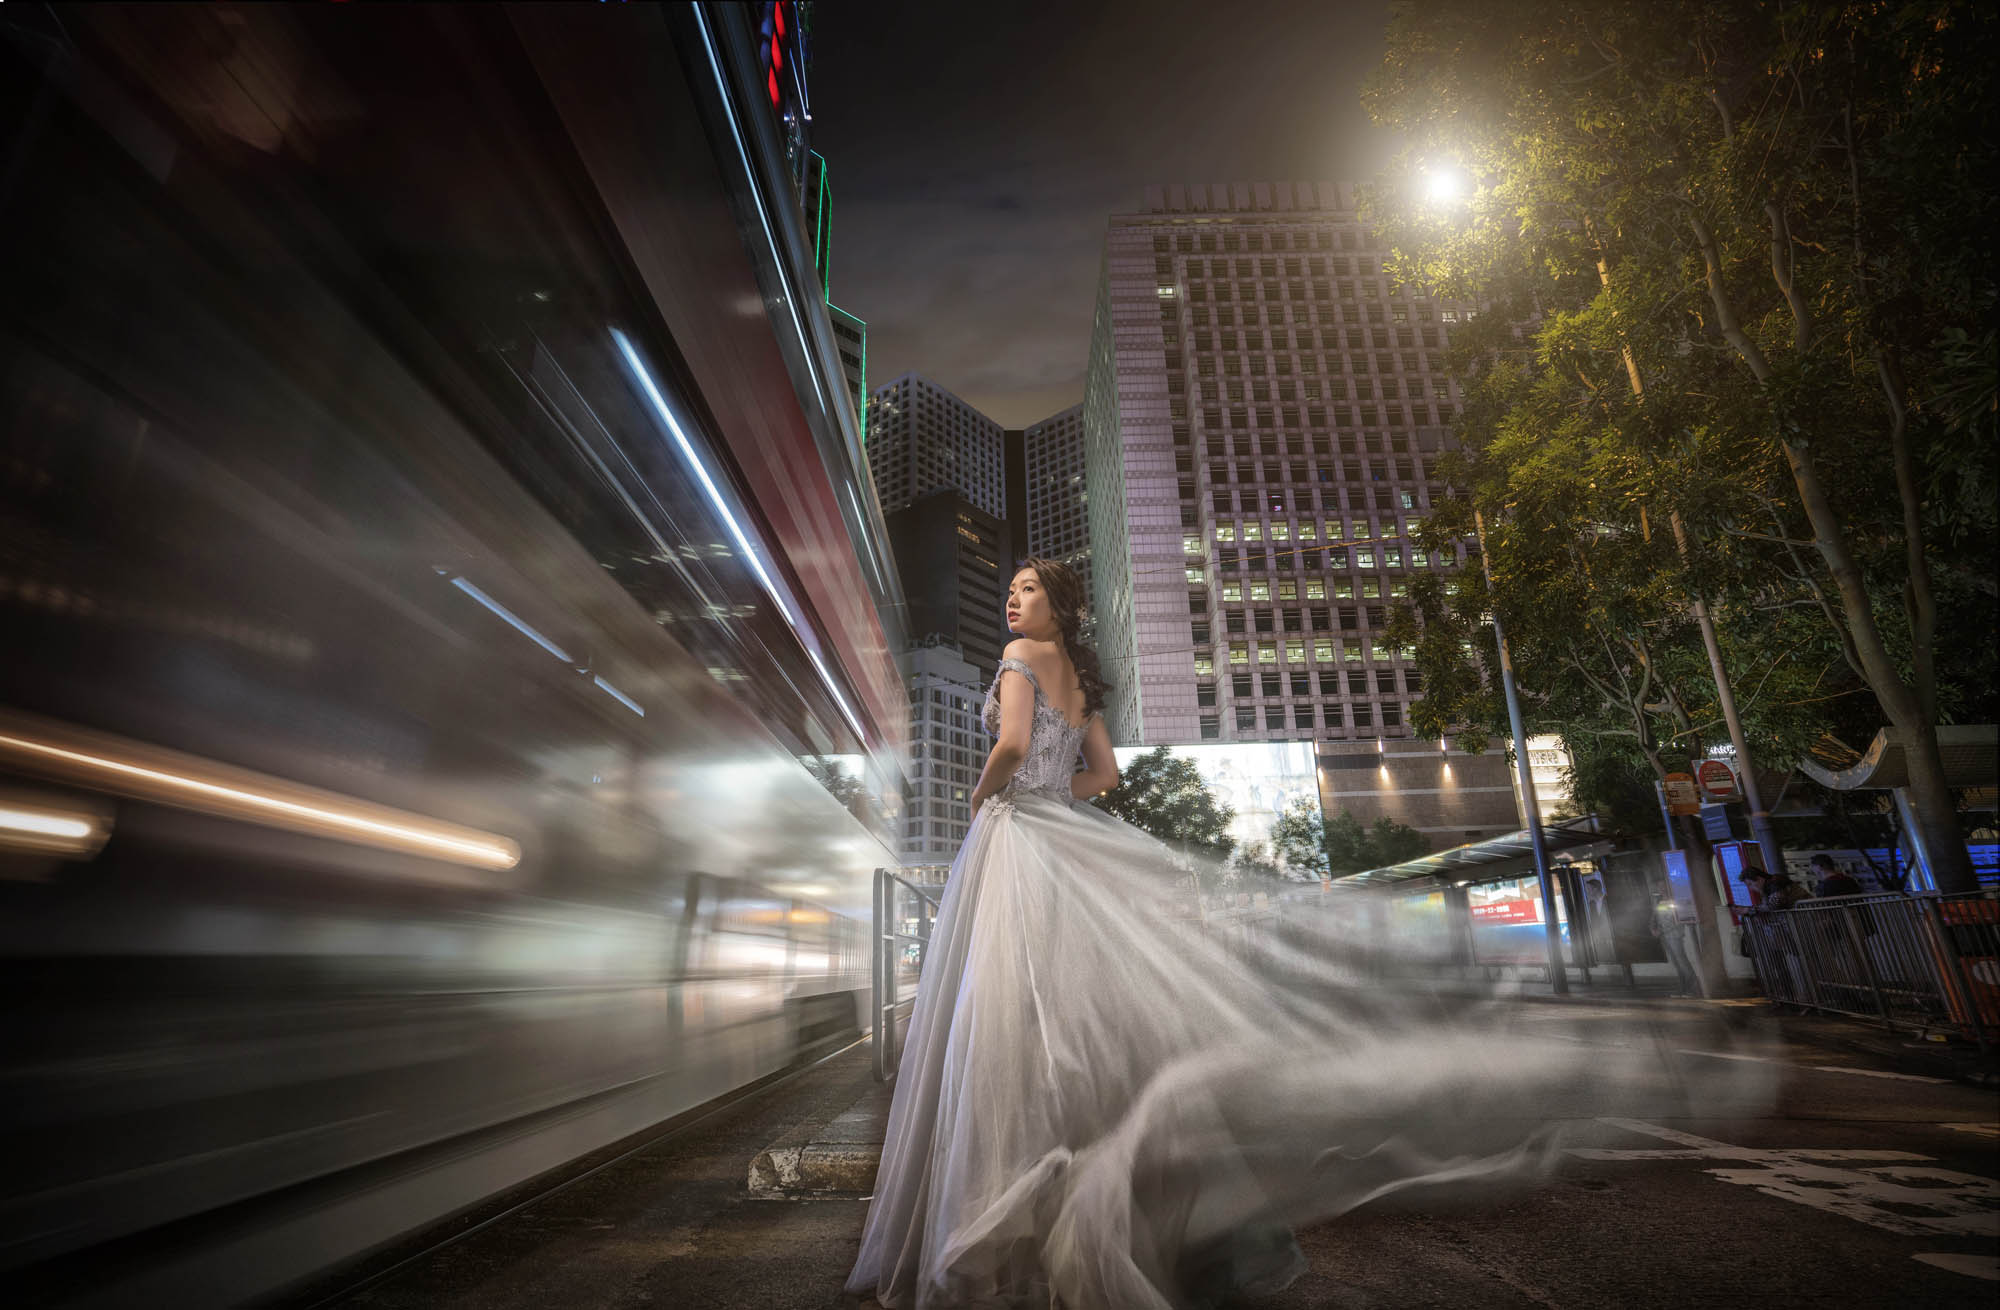 Long exposure portrait of bride on city street in China - photo by CM Leung